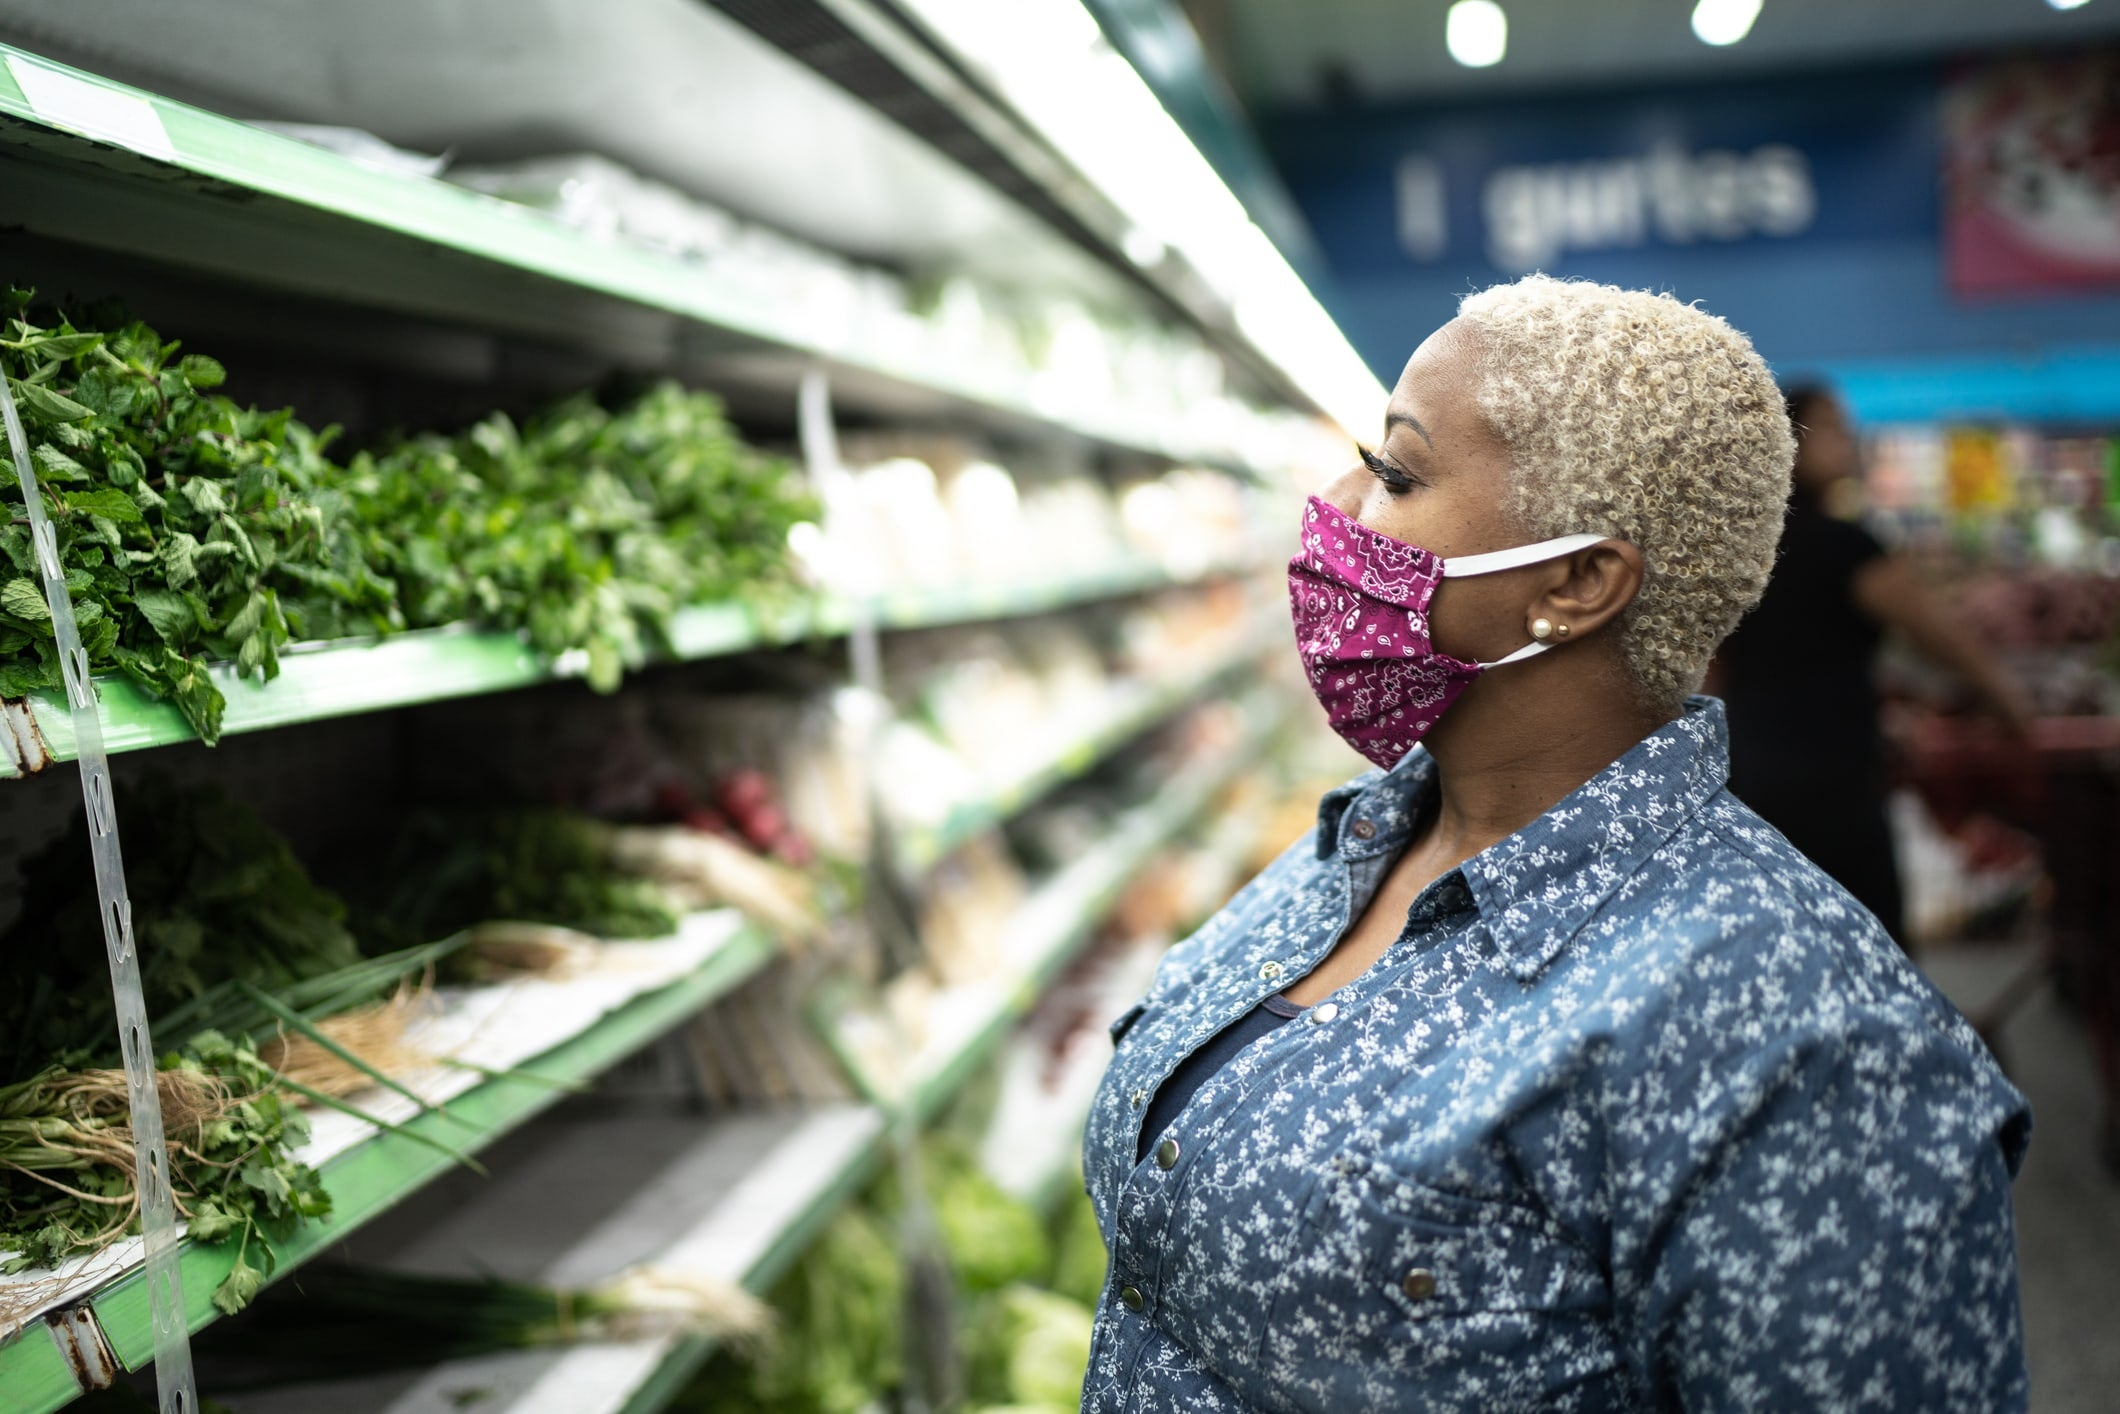 Is It Safe to Grocery Shop During the Coronavirus Outbreak?